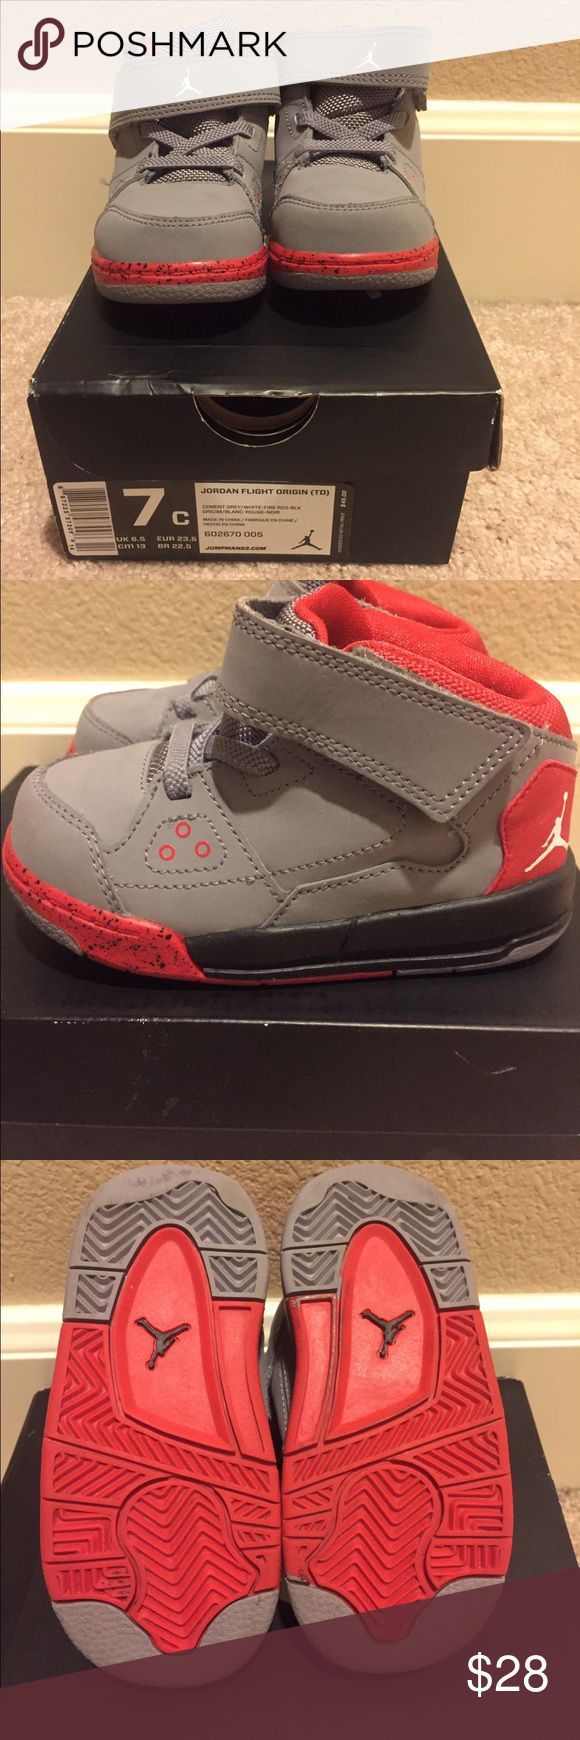 Toddler boys size 7c Jordan's flight origin shoes Size 7c toddler boys Jordans flight origin shoes.  Gently used with a small scuff that I can't get out in last picture.  Cement grey/ white/ fire red color.  Box included. Jordan Shoes